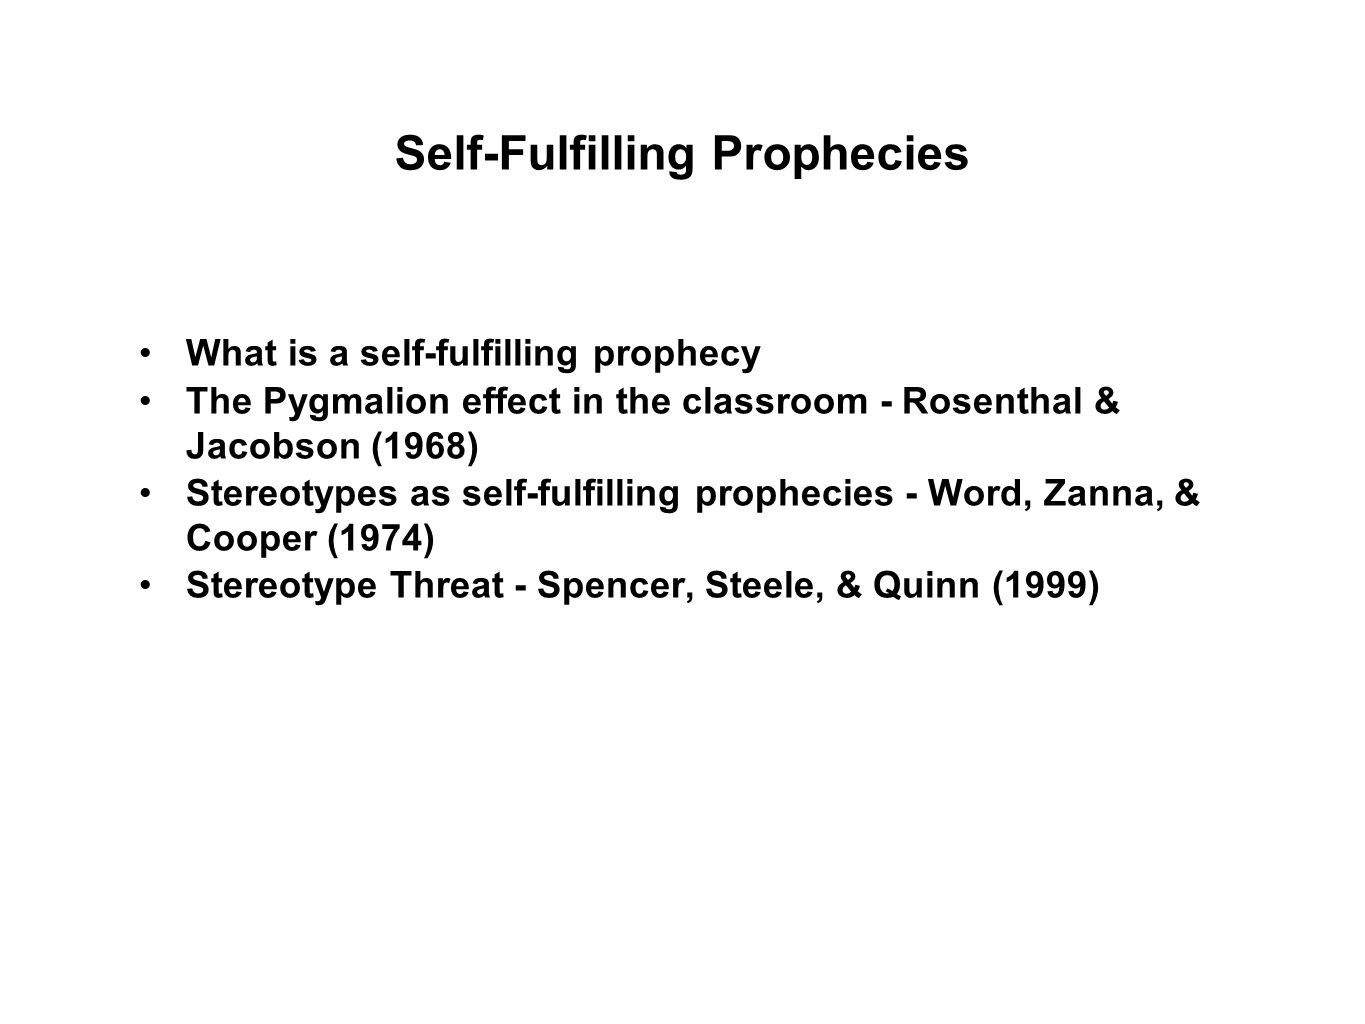 Self-Fulfilling Prophecies What is a self-fulfilling prophecy The Pygmalion effect in the classroom - Rosenthal & Jacobson (1968) Stereotypes as self-fulfilling prophecies - Word, Zanna, & Cooper (1974) Stereotype Threat - Spencer, Steele, & Quinn (1999)